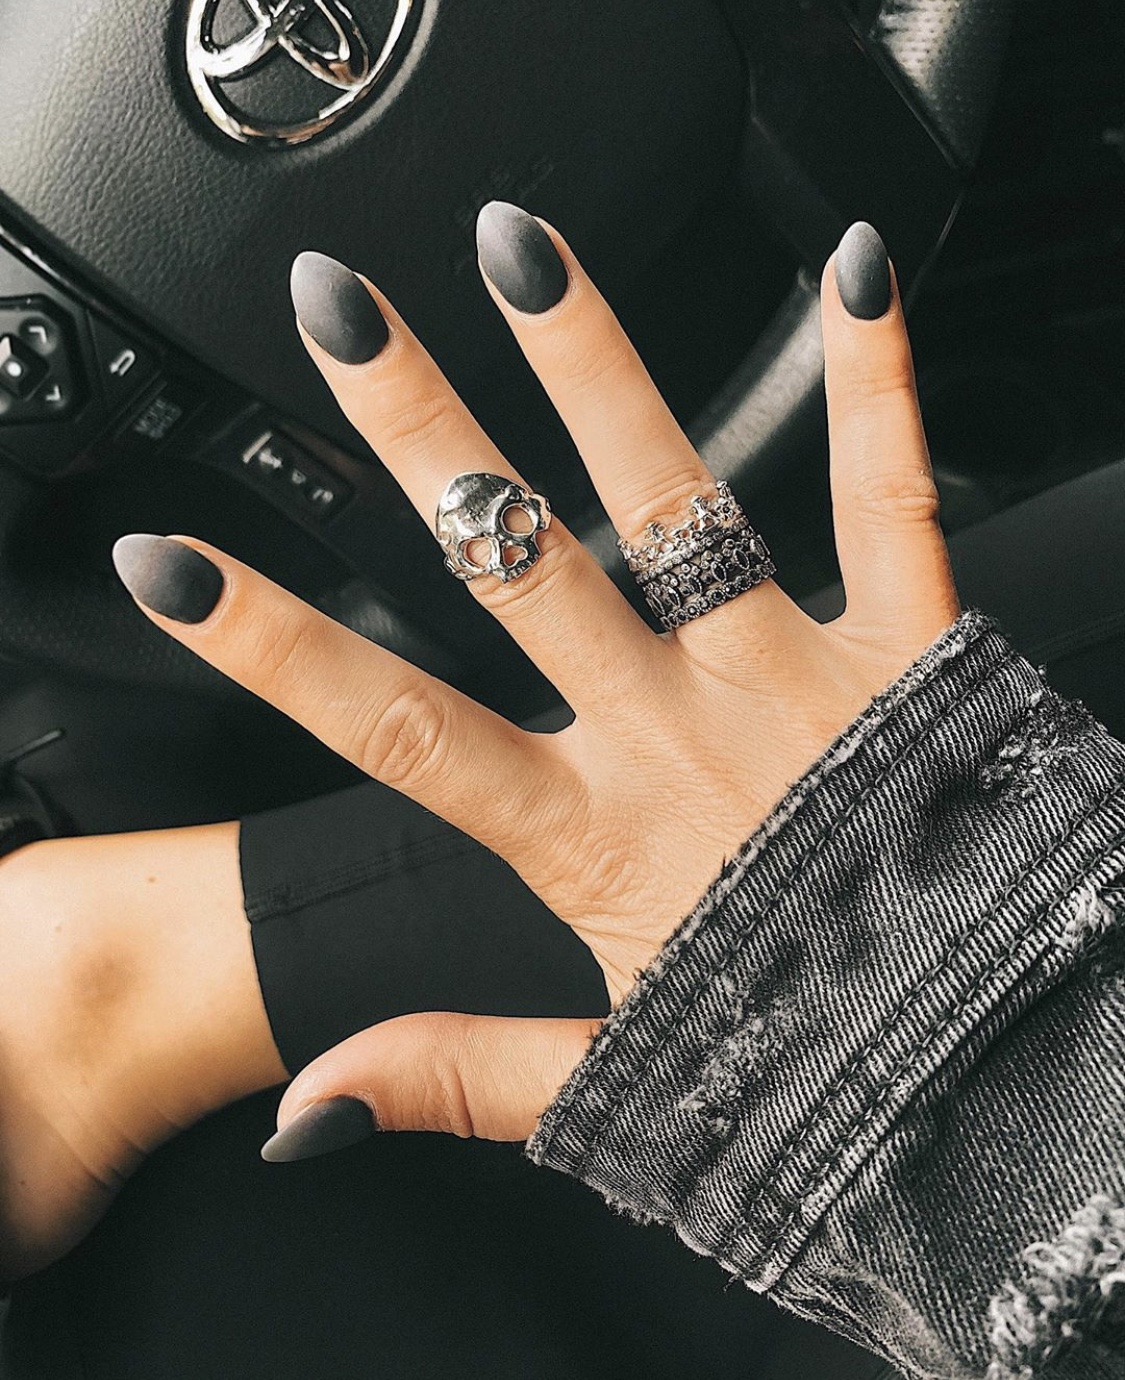 Nail Art Designs by popular Austin beauty blog, Dressed to Kill: image of a woman with black ombre nail art.